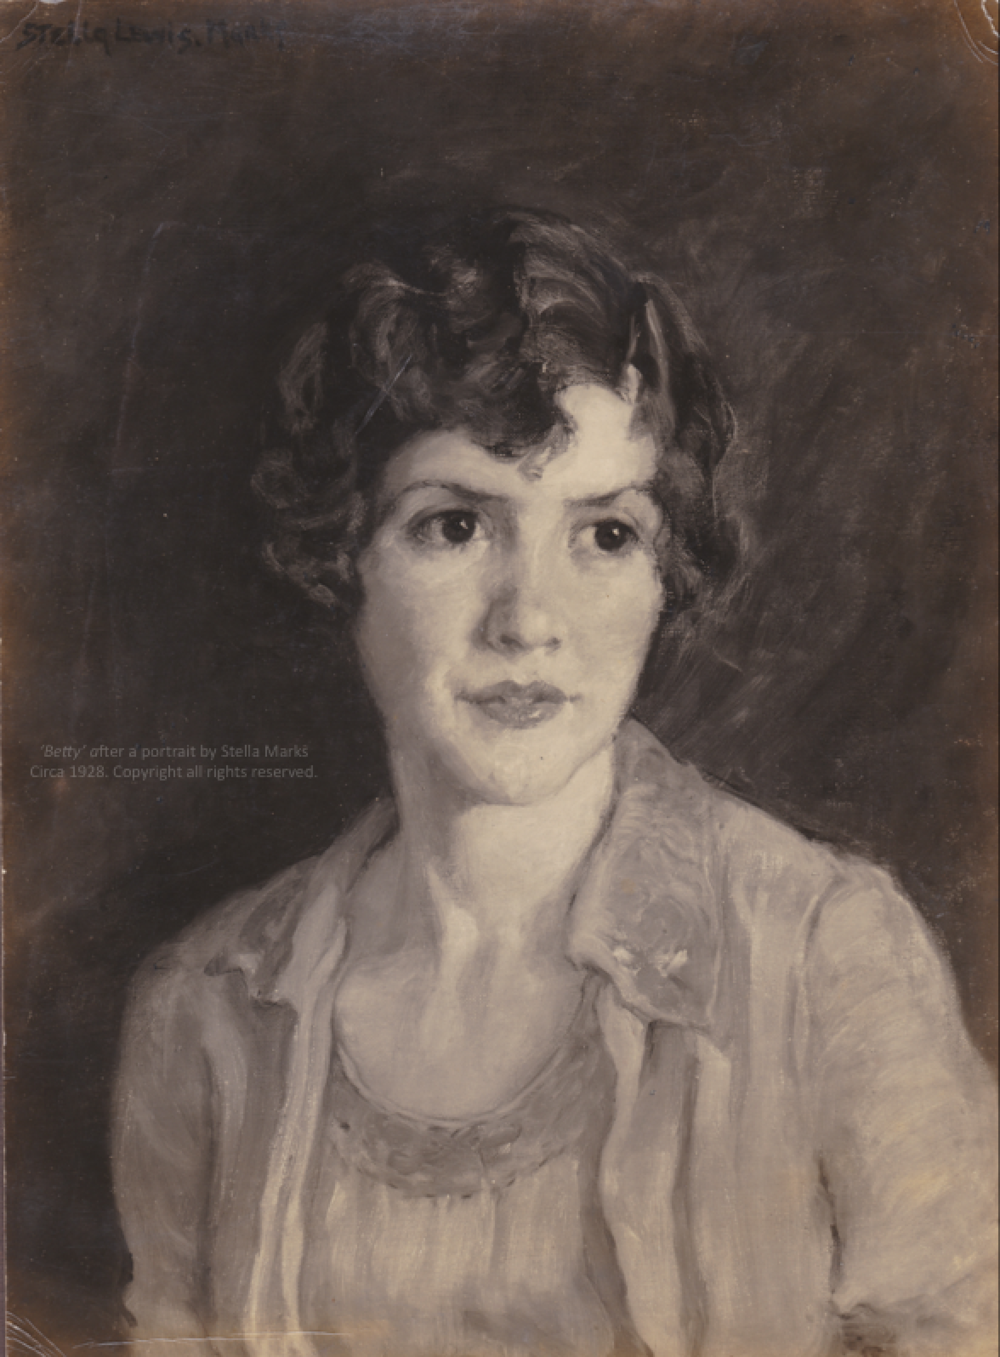 After an oil portrait by Stella Marks of her sister-in-law 'Betty', Née Elizabeth Latourette. Circa 1928. Copyright Stella Marks' Estate All rights reserved.